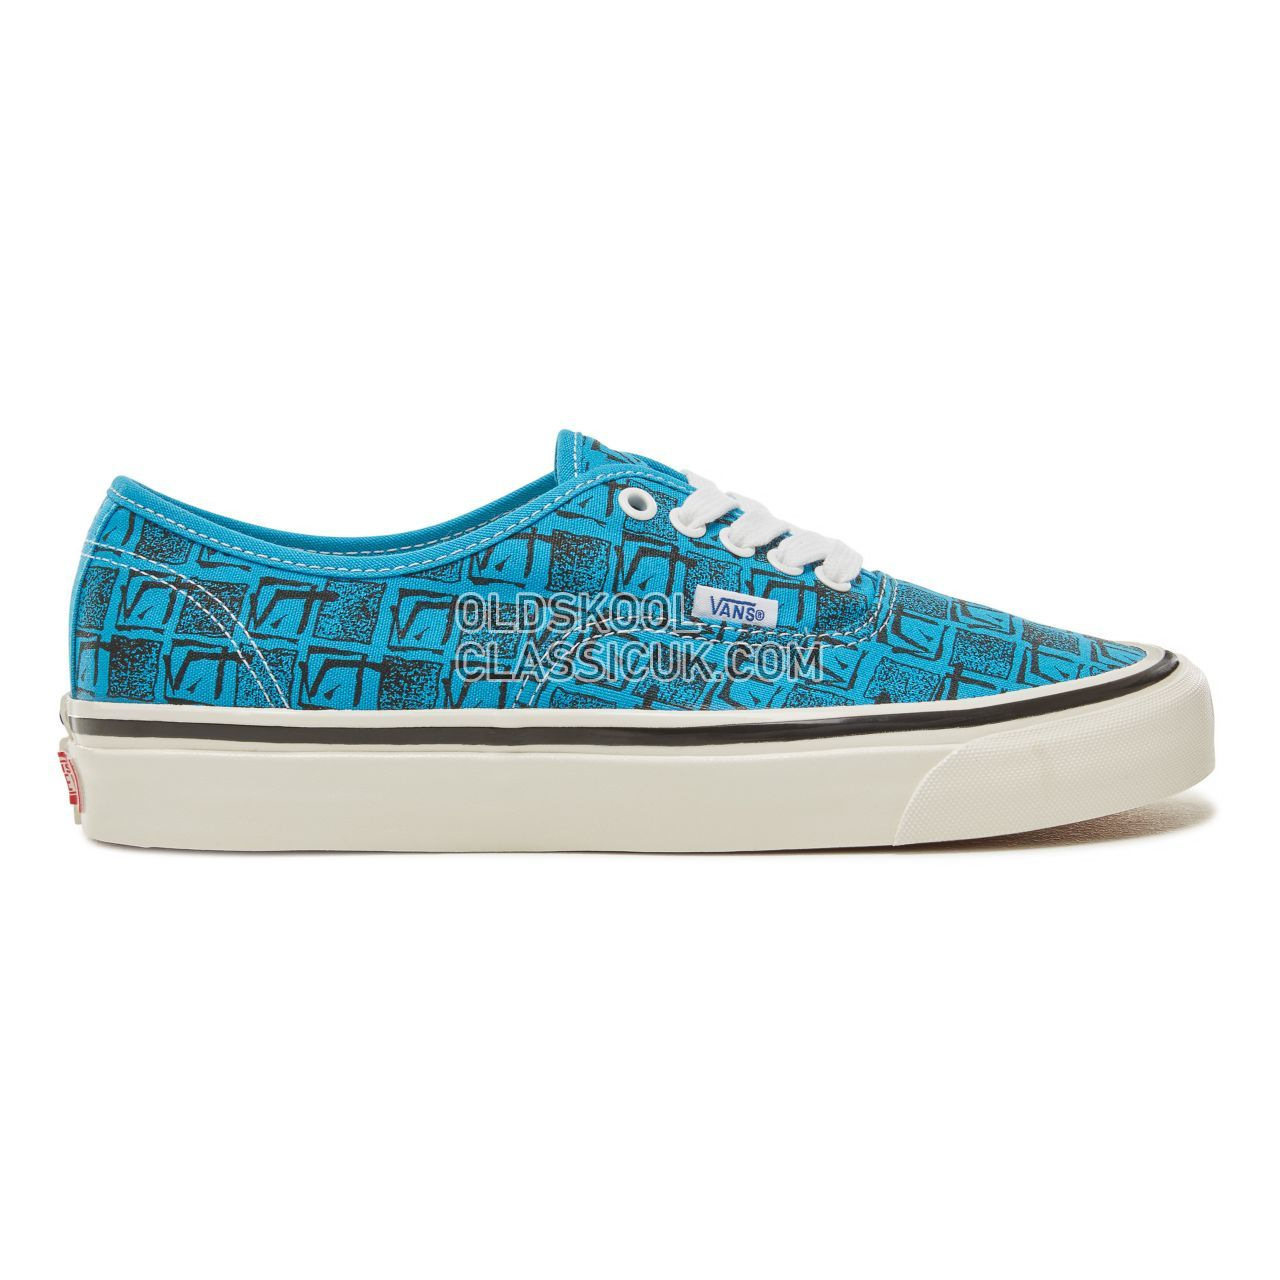 Vans Anaheim Factory Authentic 44 Sneakers Mens (Anaheim Factory) Og Bright Blue/Square Root VA38ENU69 Shoes